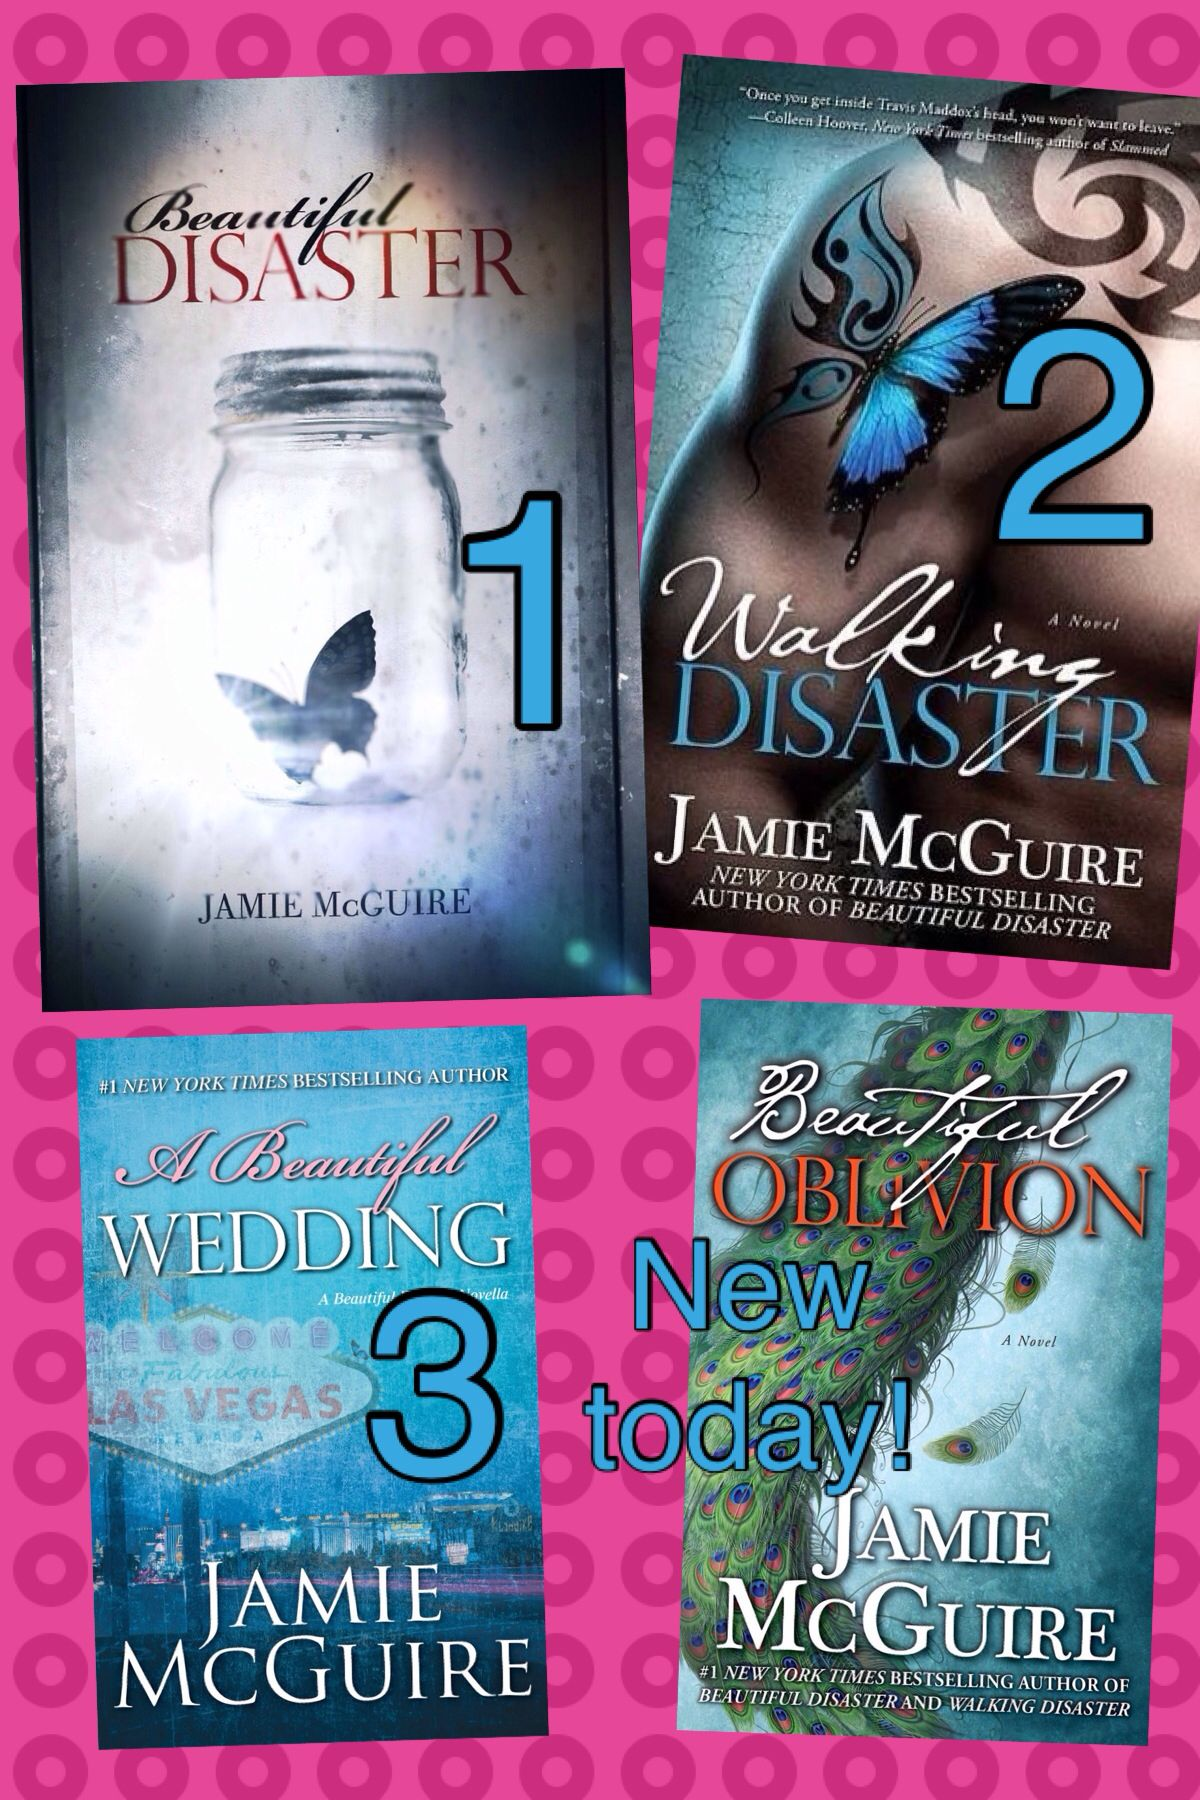 Beautiful Oblivion By Jamie Mcguire And A Wedding Didn T Know That One